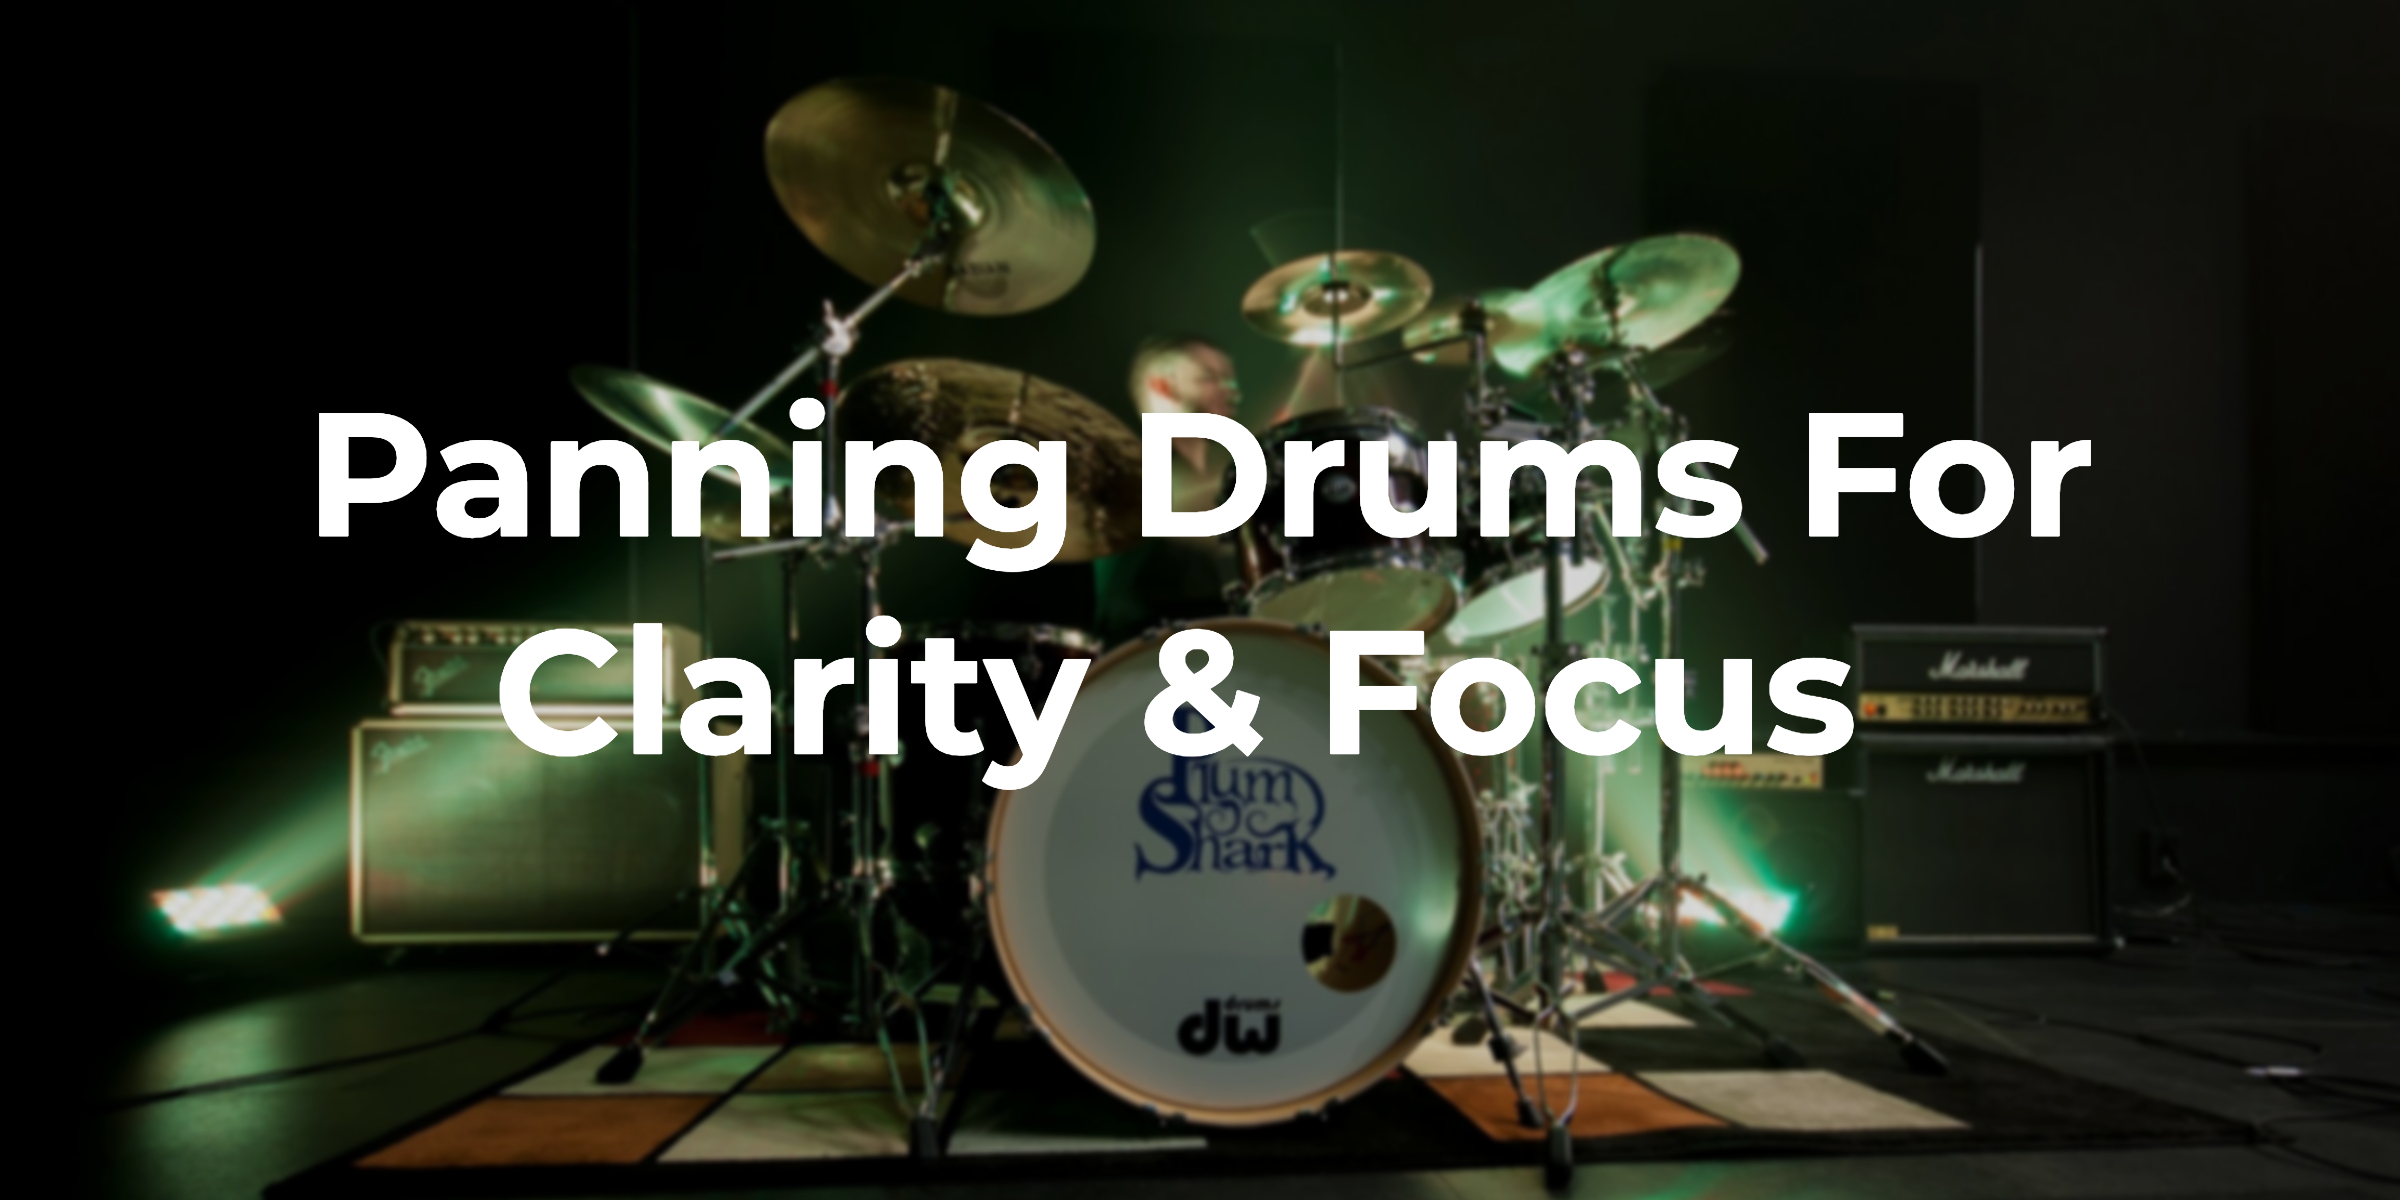 panning drums when mixing rock music